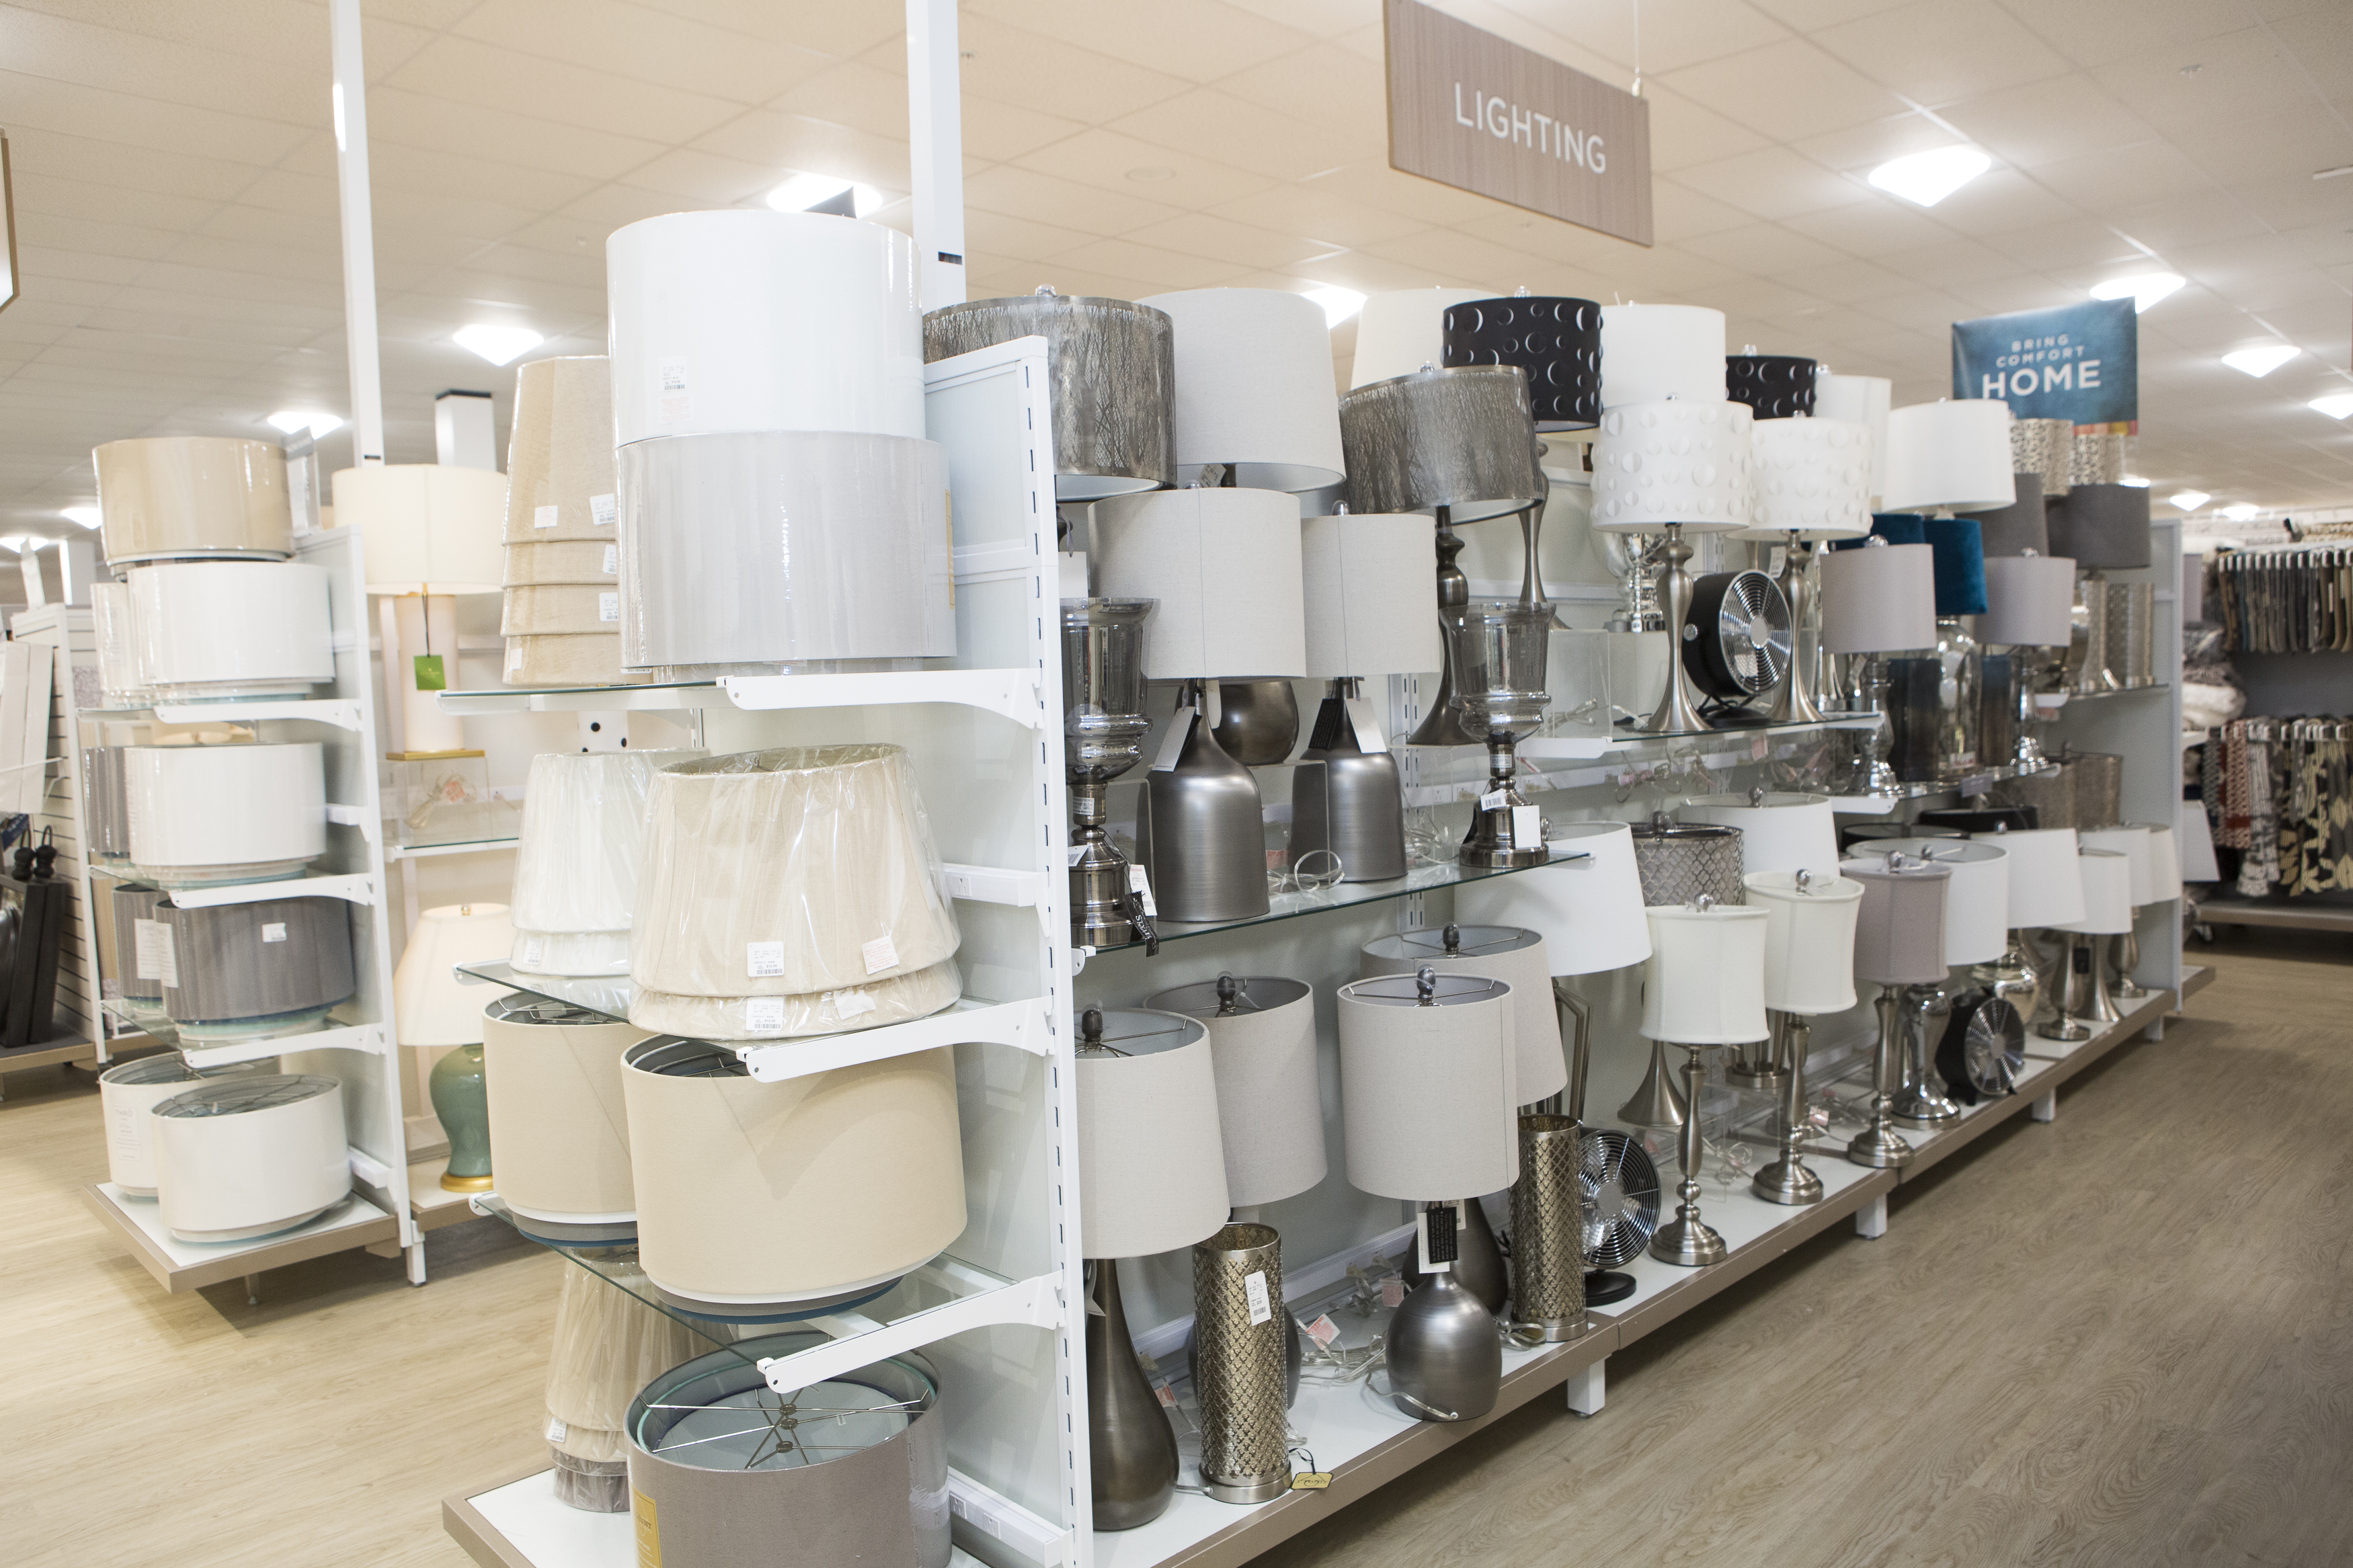 "<a  href=""https://www.homegoods.com/"" target=""_blank"" title=""https://www.homegoods.com/"">HomeGoods</a>{&nbsp;}is opening a brand new (and the very first) store in Seattle on November 3, 2019 at 1500 W Armory Way in Interbay! If you aren't too familiar with HomeGoods, this store has{&nbsp;}high quality home décor at unbelievable values, including top brands and designers to unique finds from all over the world. The store offers everything from gourmet foods to bedding, bathroom and storage necessities, kids and pet décor and more. Opening at 8 a.m., stop by HomeGoods to shop around and enjoy custom treats from Cupcake Royale. There will also be games to play on site! (Image courtesy of HomeGoods)."